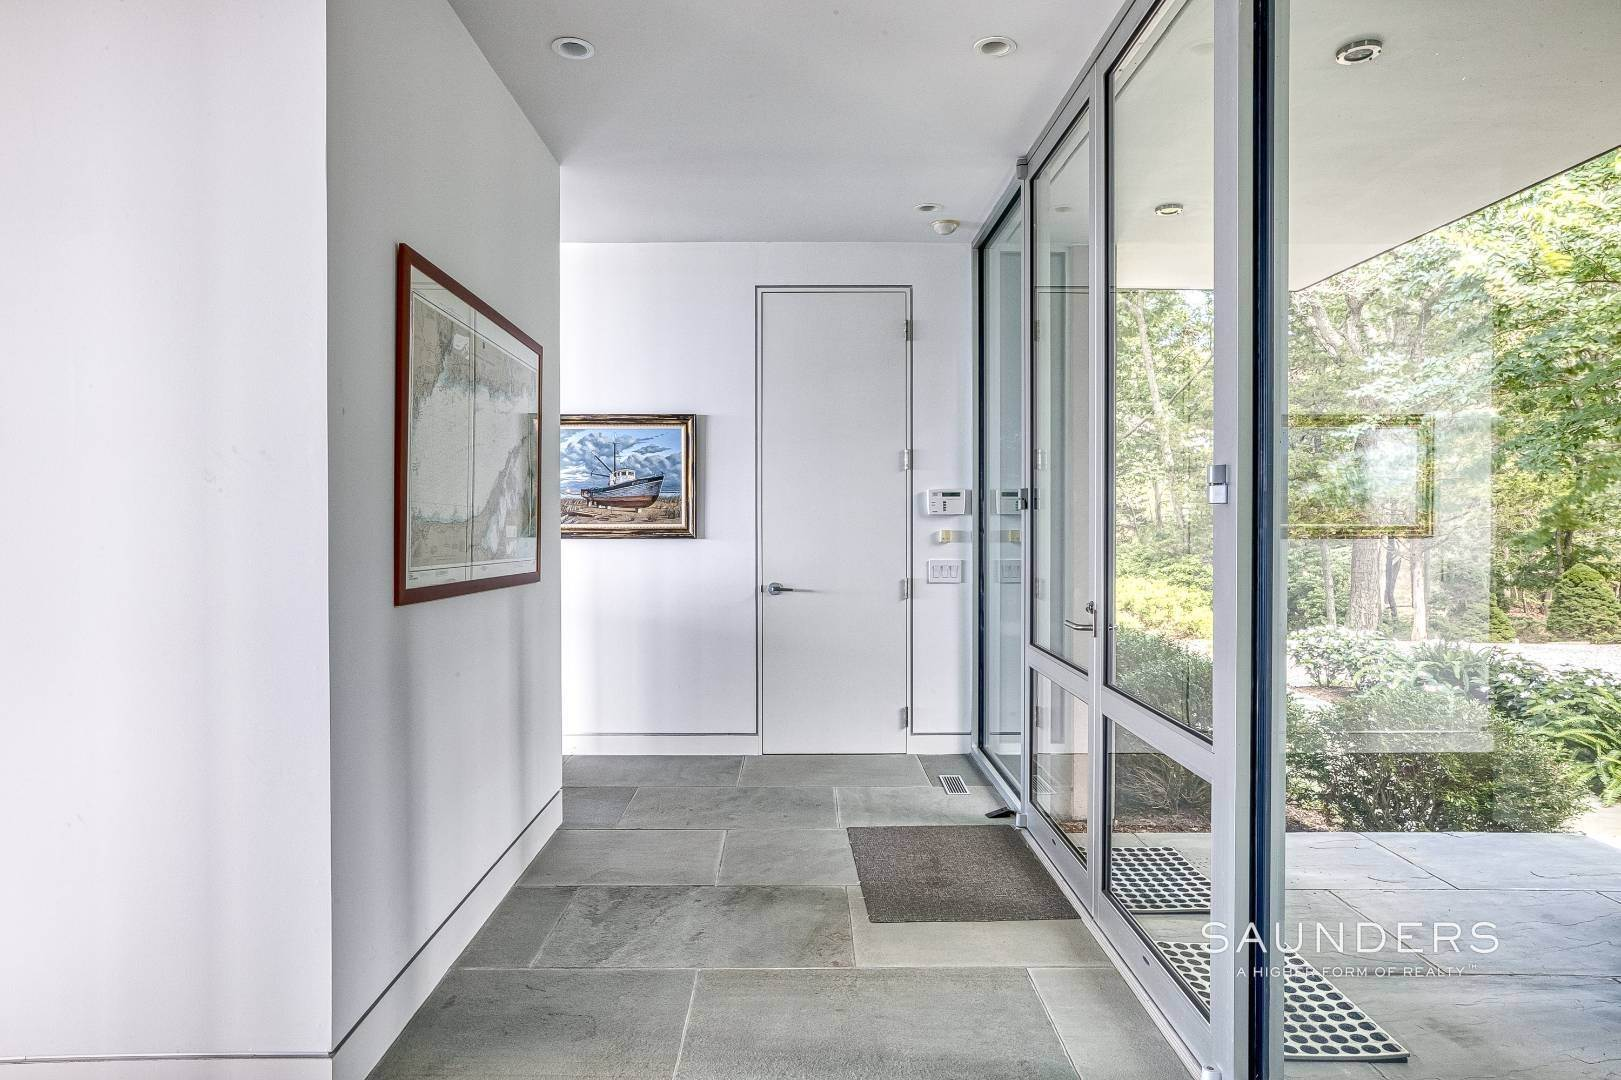 33. Single Family Homes for Sale at Shelter Island Classic Modern 42 Prospect Avenue And 23 Serpentine Drive, Shelter Island Heights, Shelter Island, NY 11965